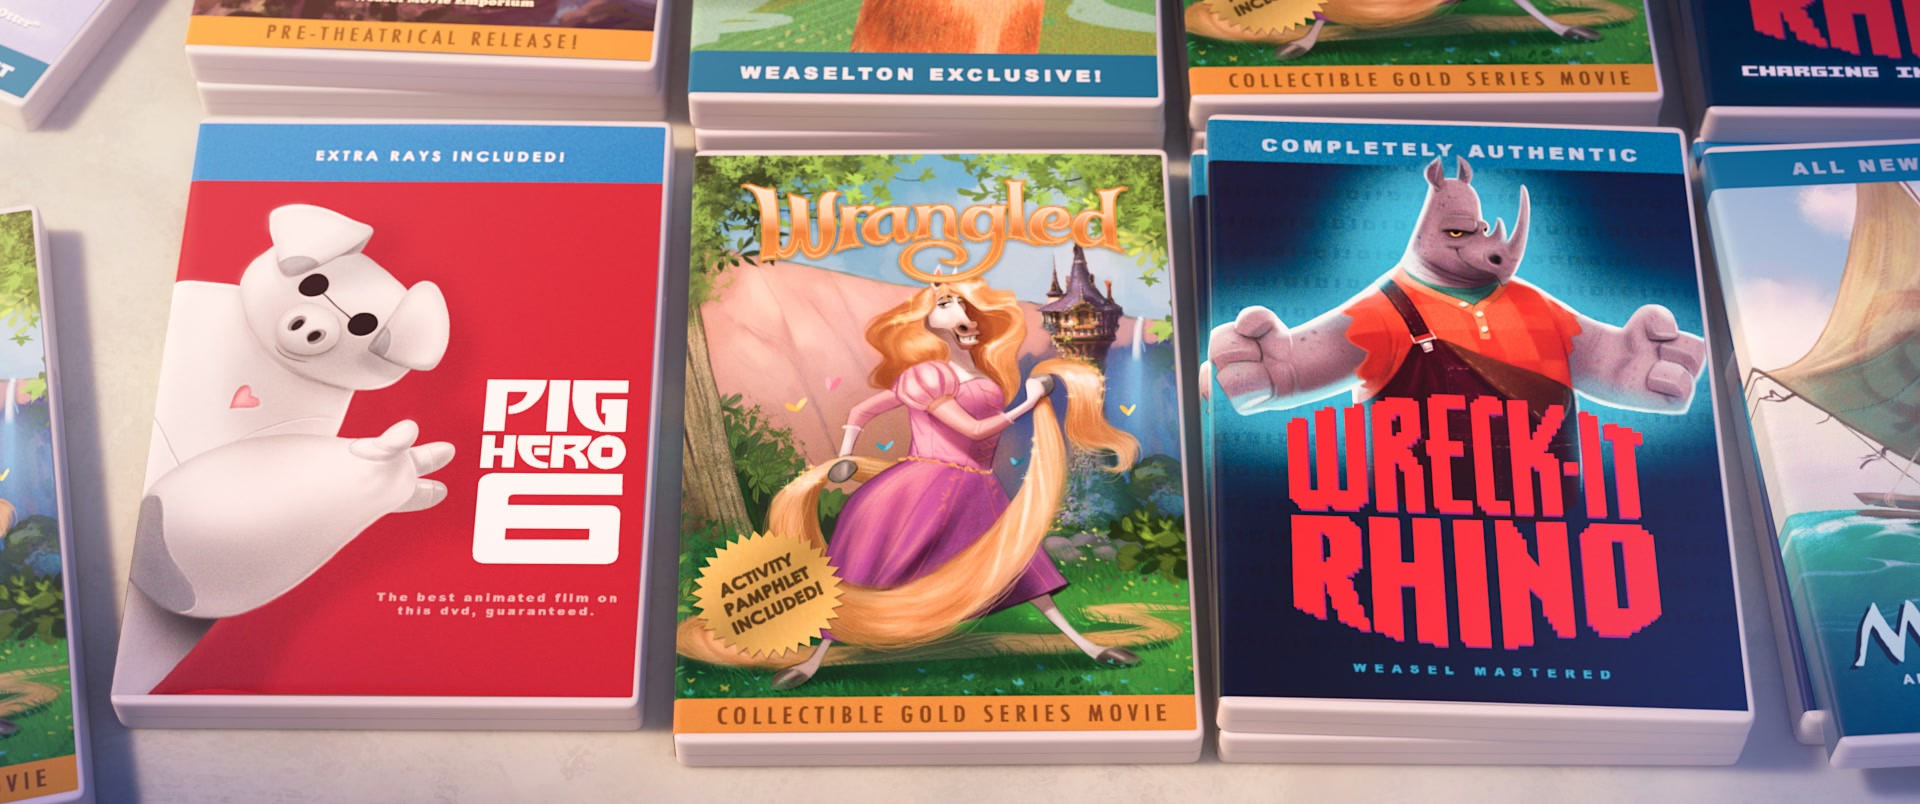 ZOOTOPIA – Easter Eggs: Weaselton Bootleg DVDs of PIG HERO 6, WRANGLED, WRECK-IT RHINO. ©2016 Disney. All Rights Reserved.